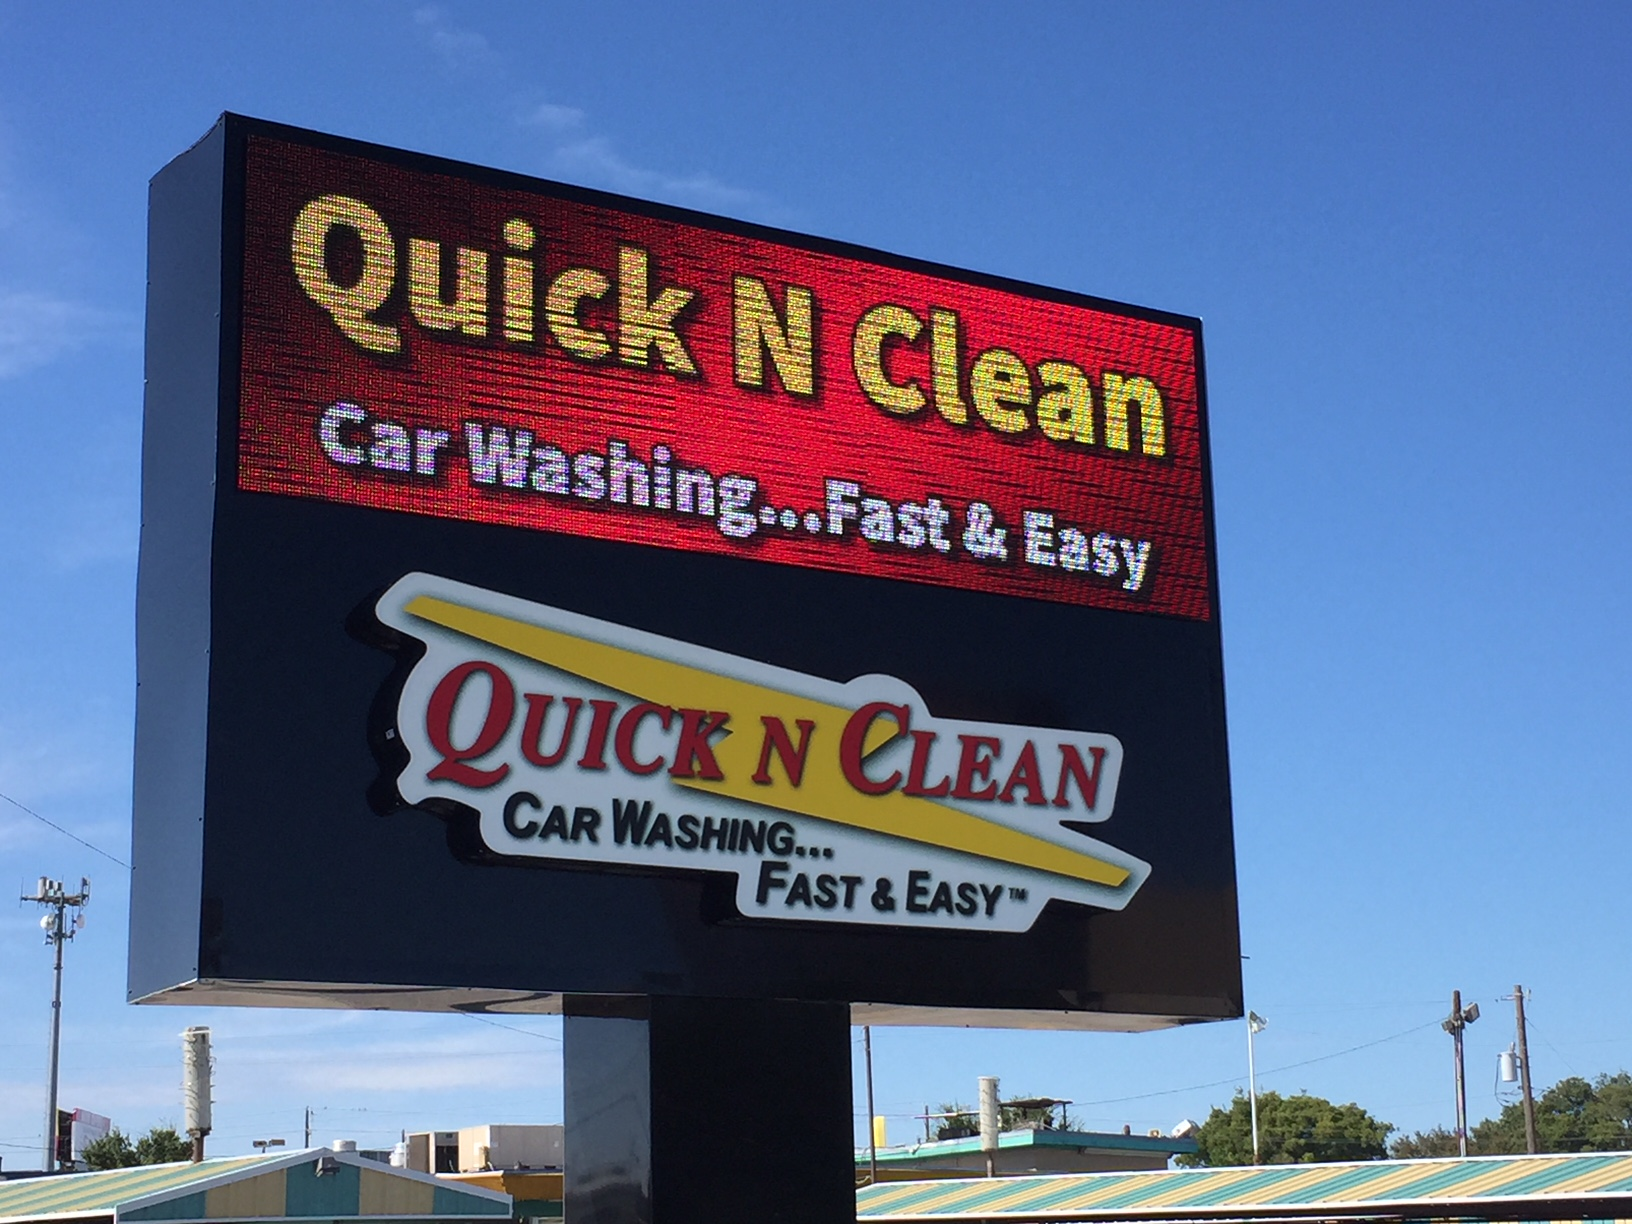 Quick N Clean Car Wash - DALLAS TX  - GRAND OPENING!